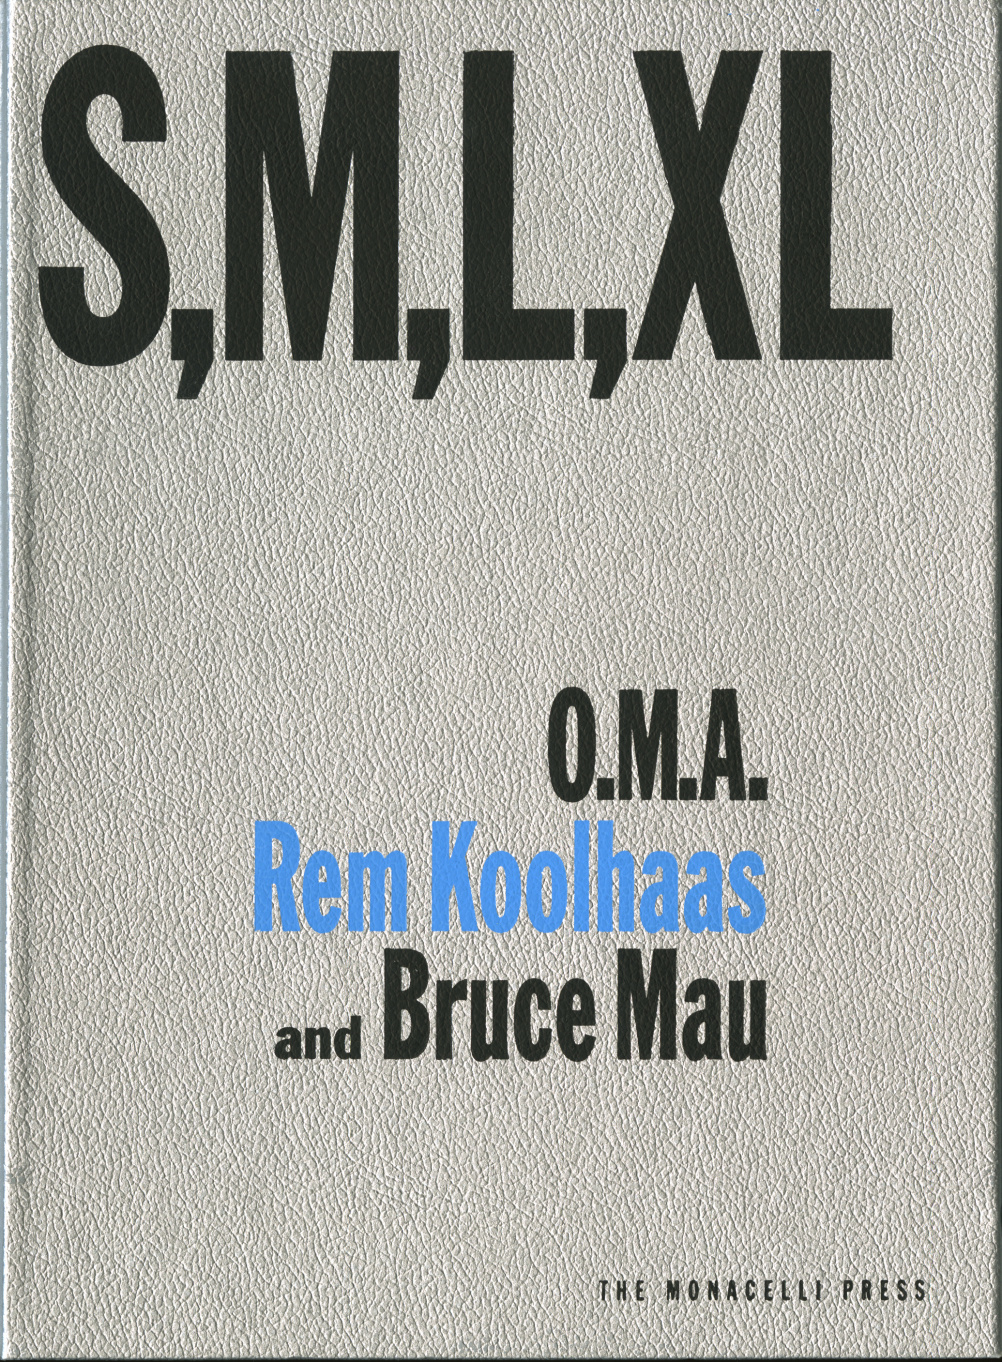 Piers Gough has chosen Small Medium Large Extra Large by Rem Koolhaas